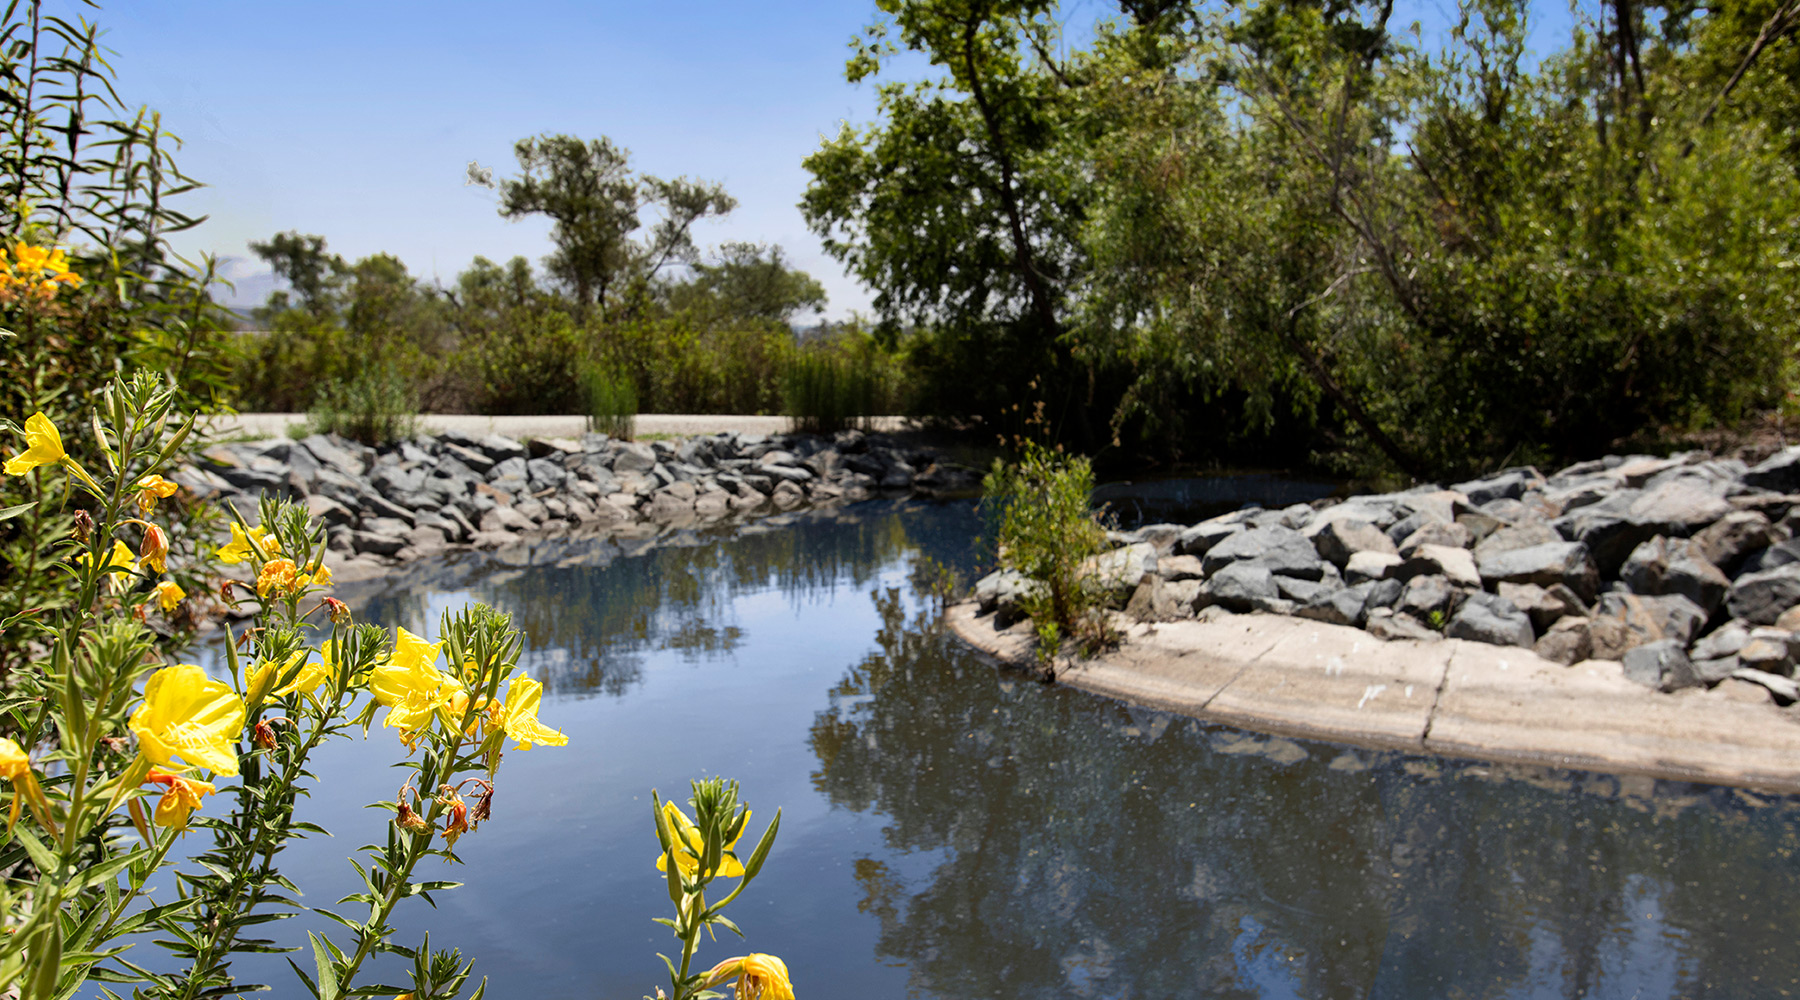 The Royce - Irvine Nature Preserve Hiking and Biking